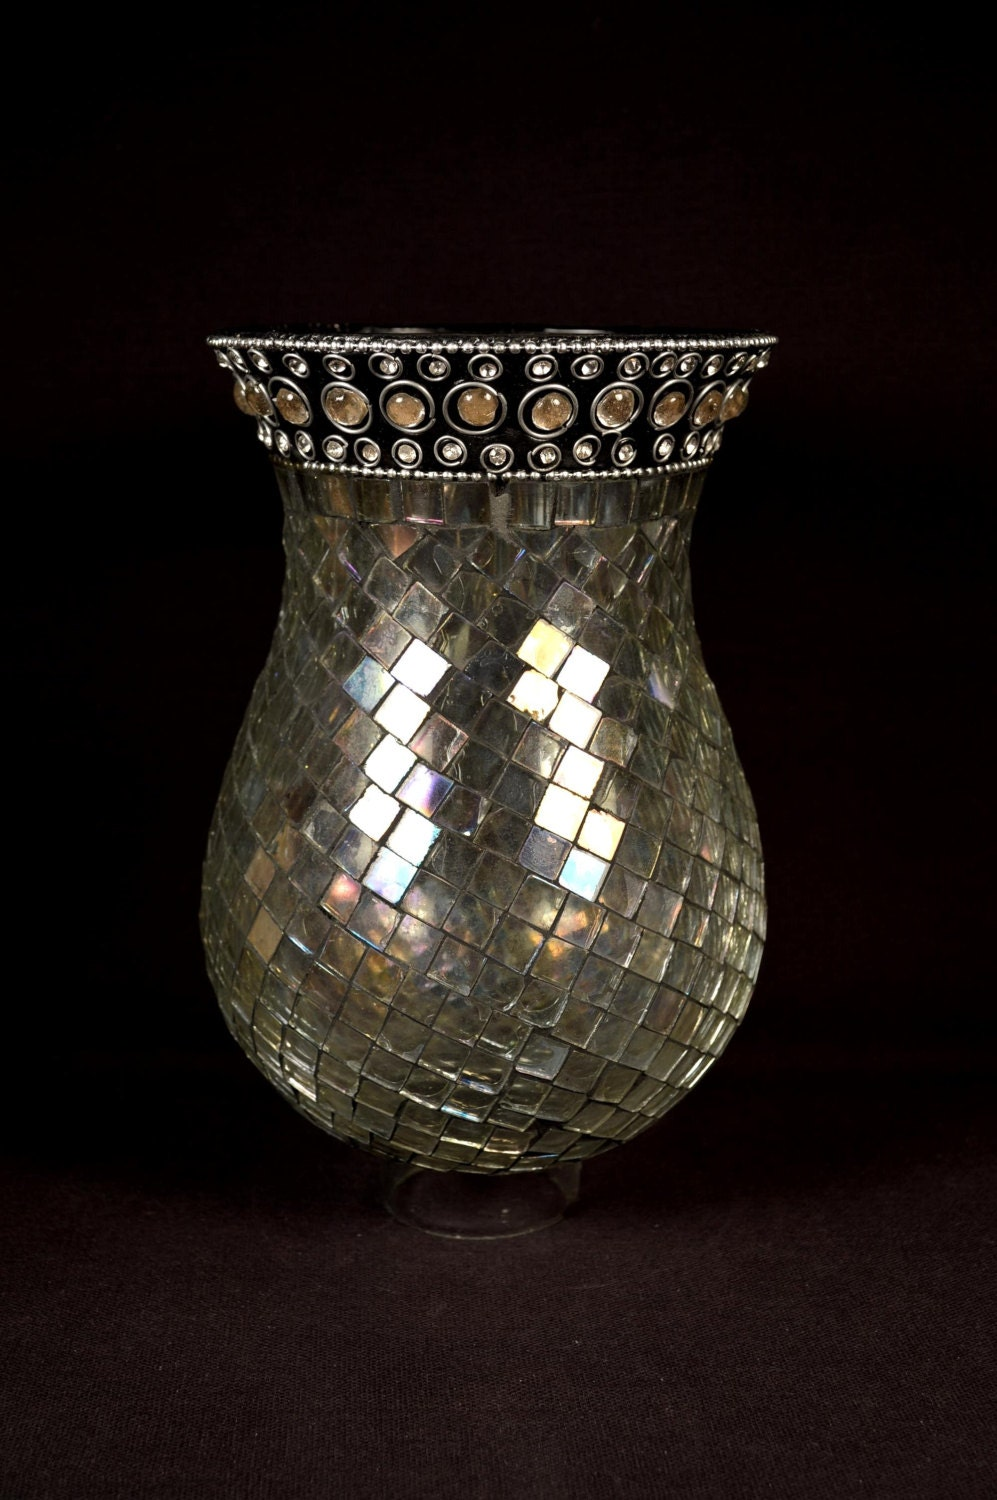 Wall Sconce Replacement Hurricane Glass : Glass Mosaic Hurricane Shade Lamp Wall Sconce Replacement